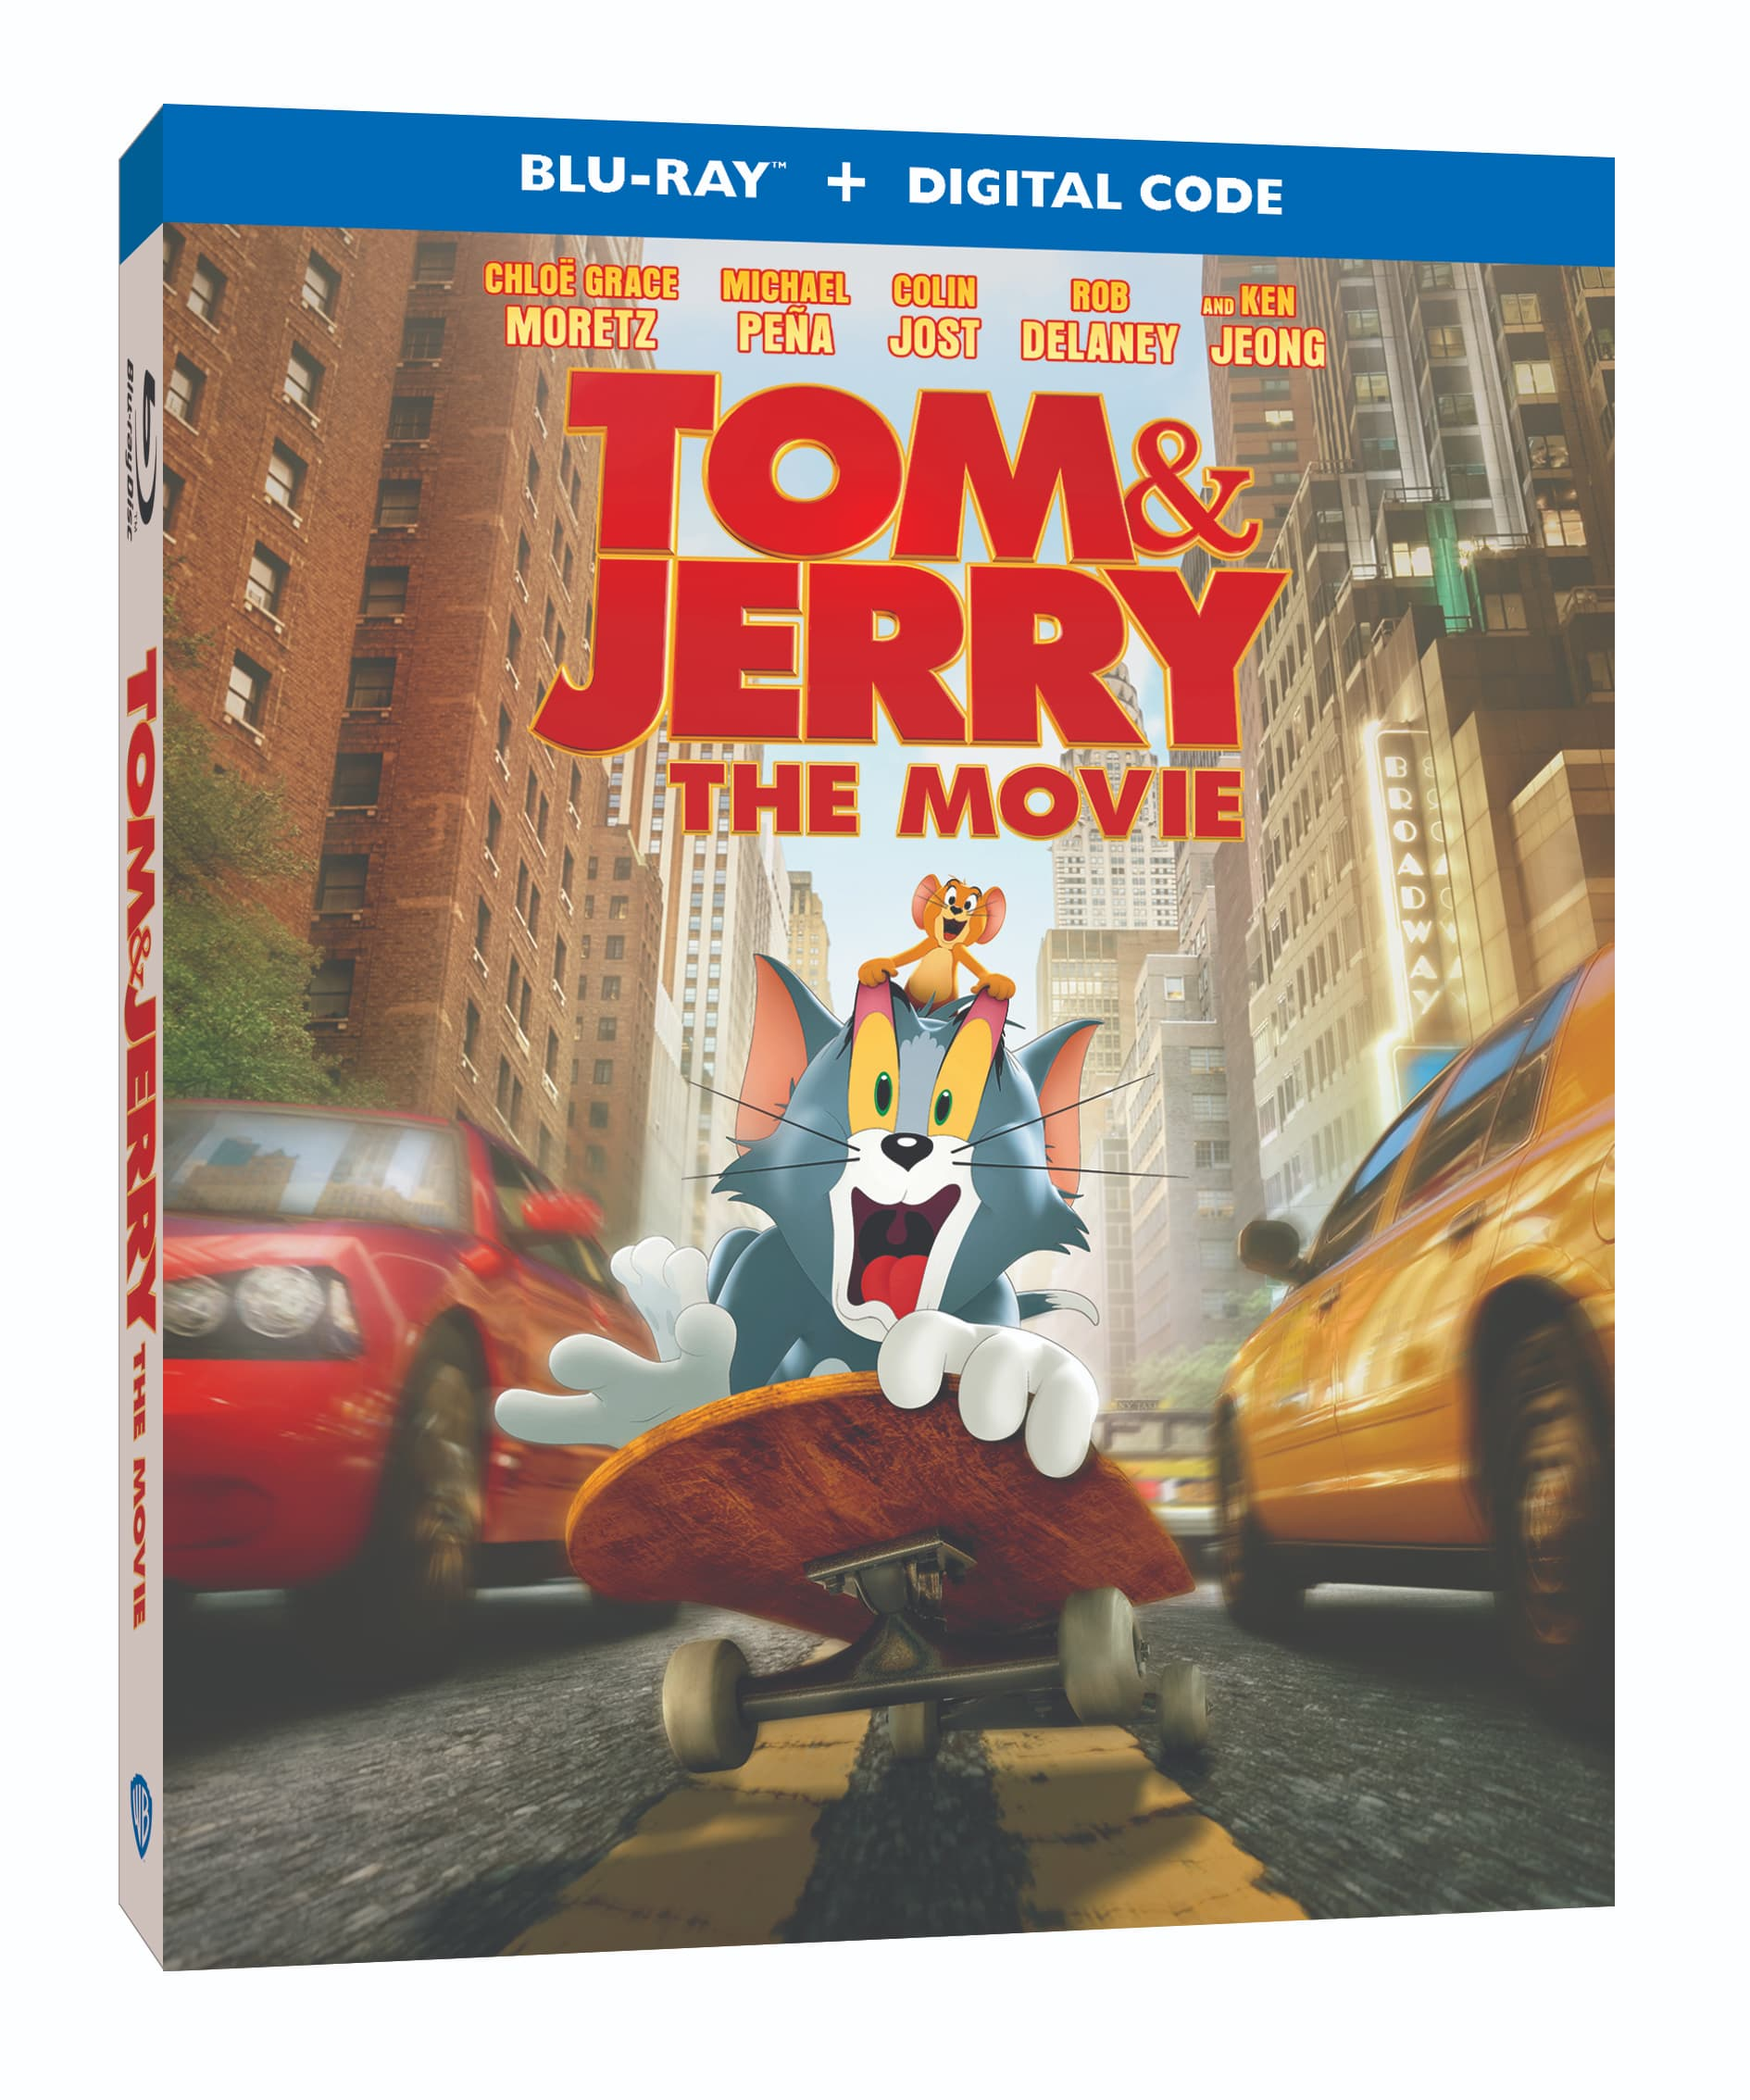 Tom & Jerry Blu-ray, DVD, and Digital Release Info